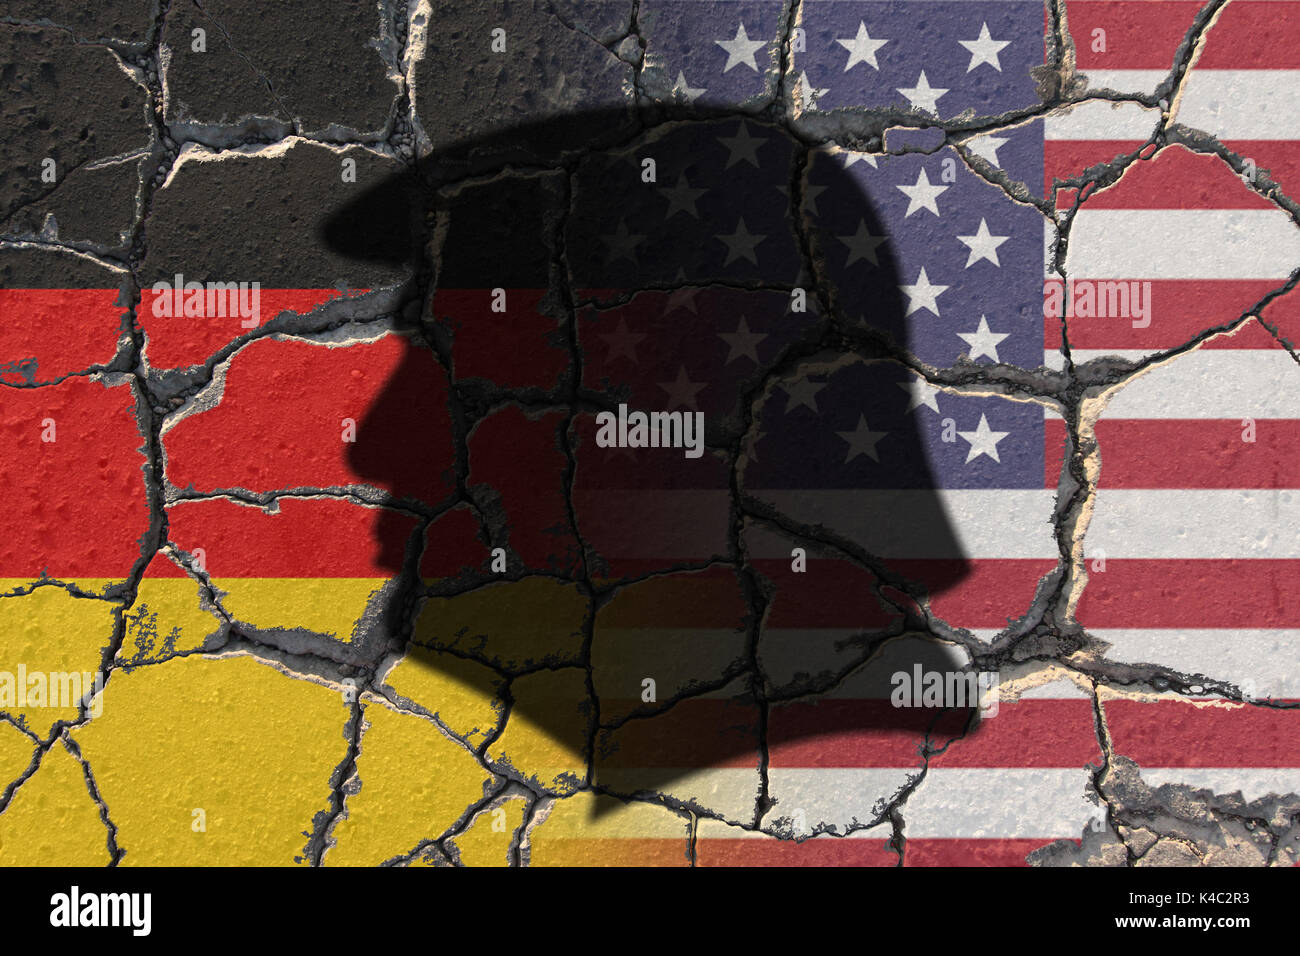 Silhouette Of Donald Trump With Flags Of Usa And Germany On Eroding Ground Stock Photo